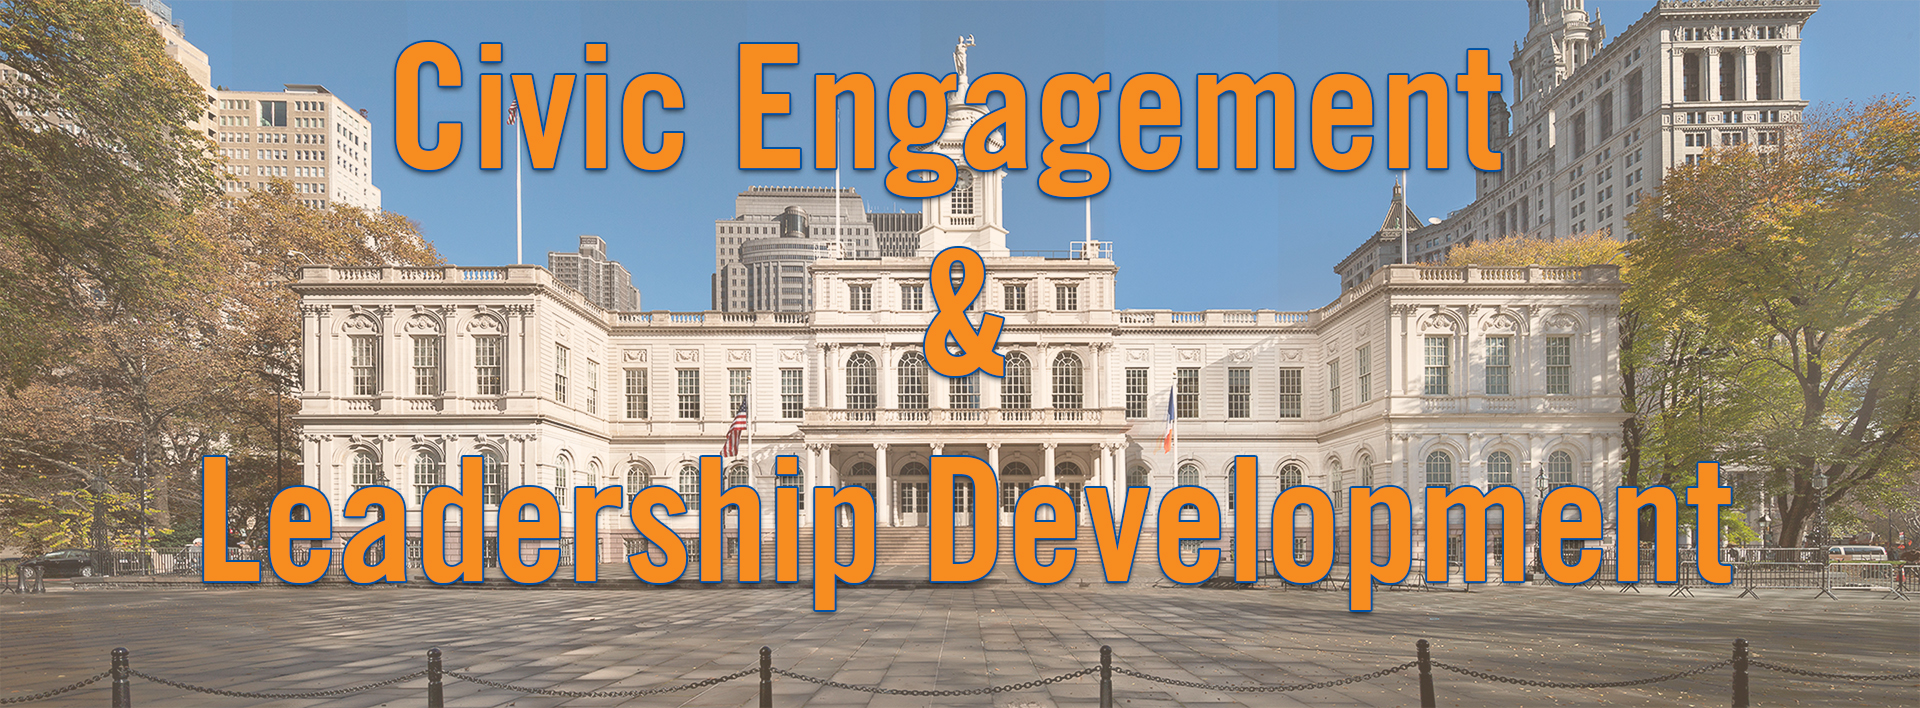 Civic Engagment header